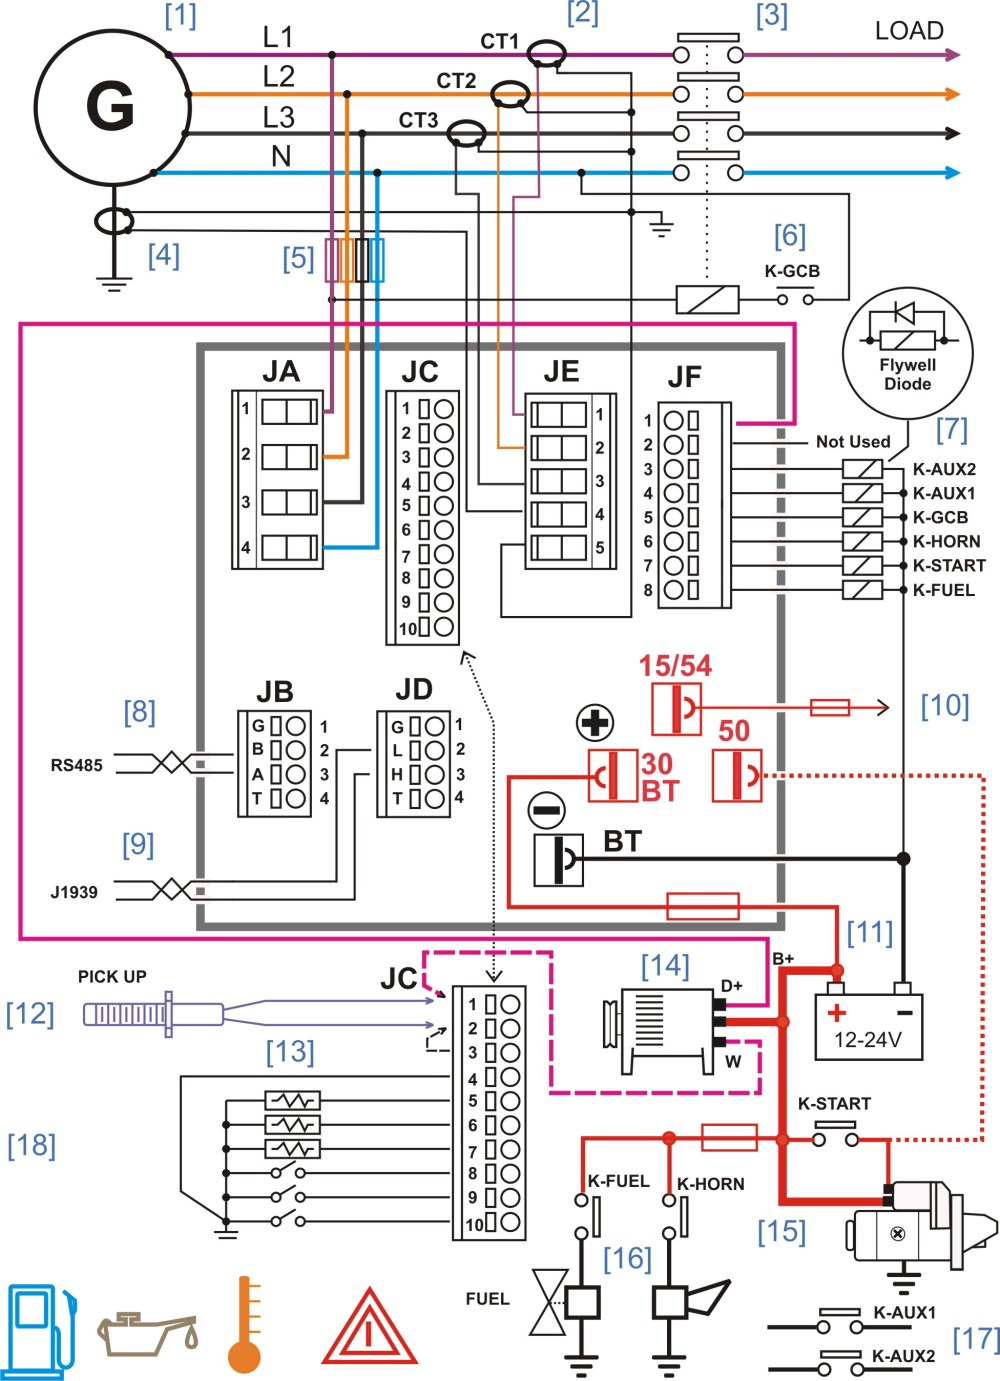 medium resolution of genset generators wiring diagram wiring diagram new generator controller wiring diagram generator controllers genset generator wiring